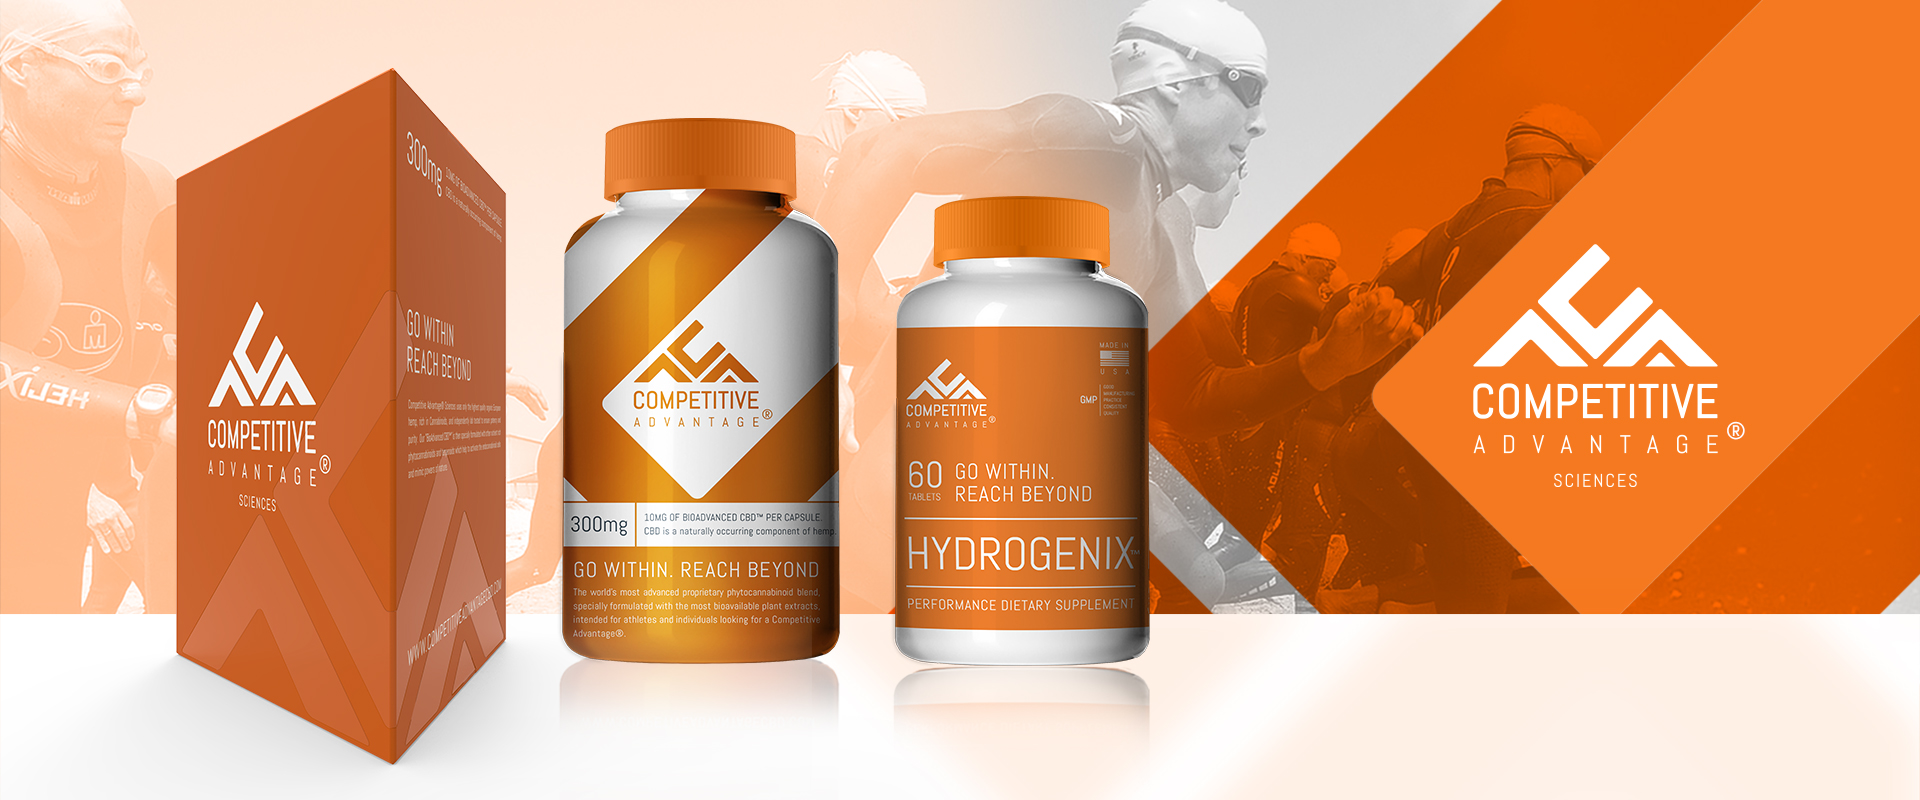 Competitive Advantage Supplement Packaging